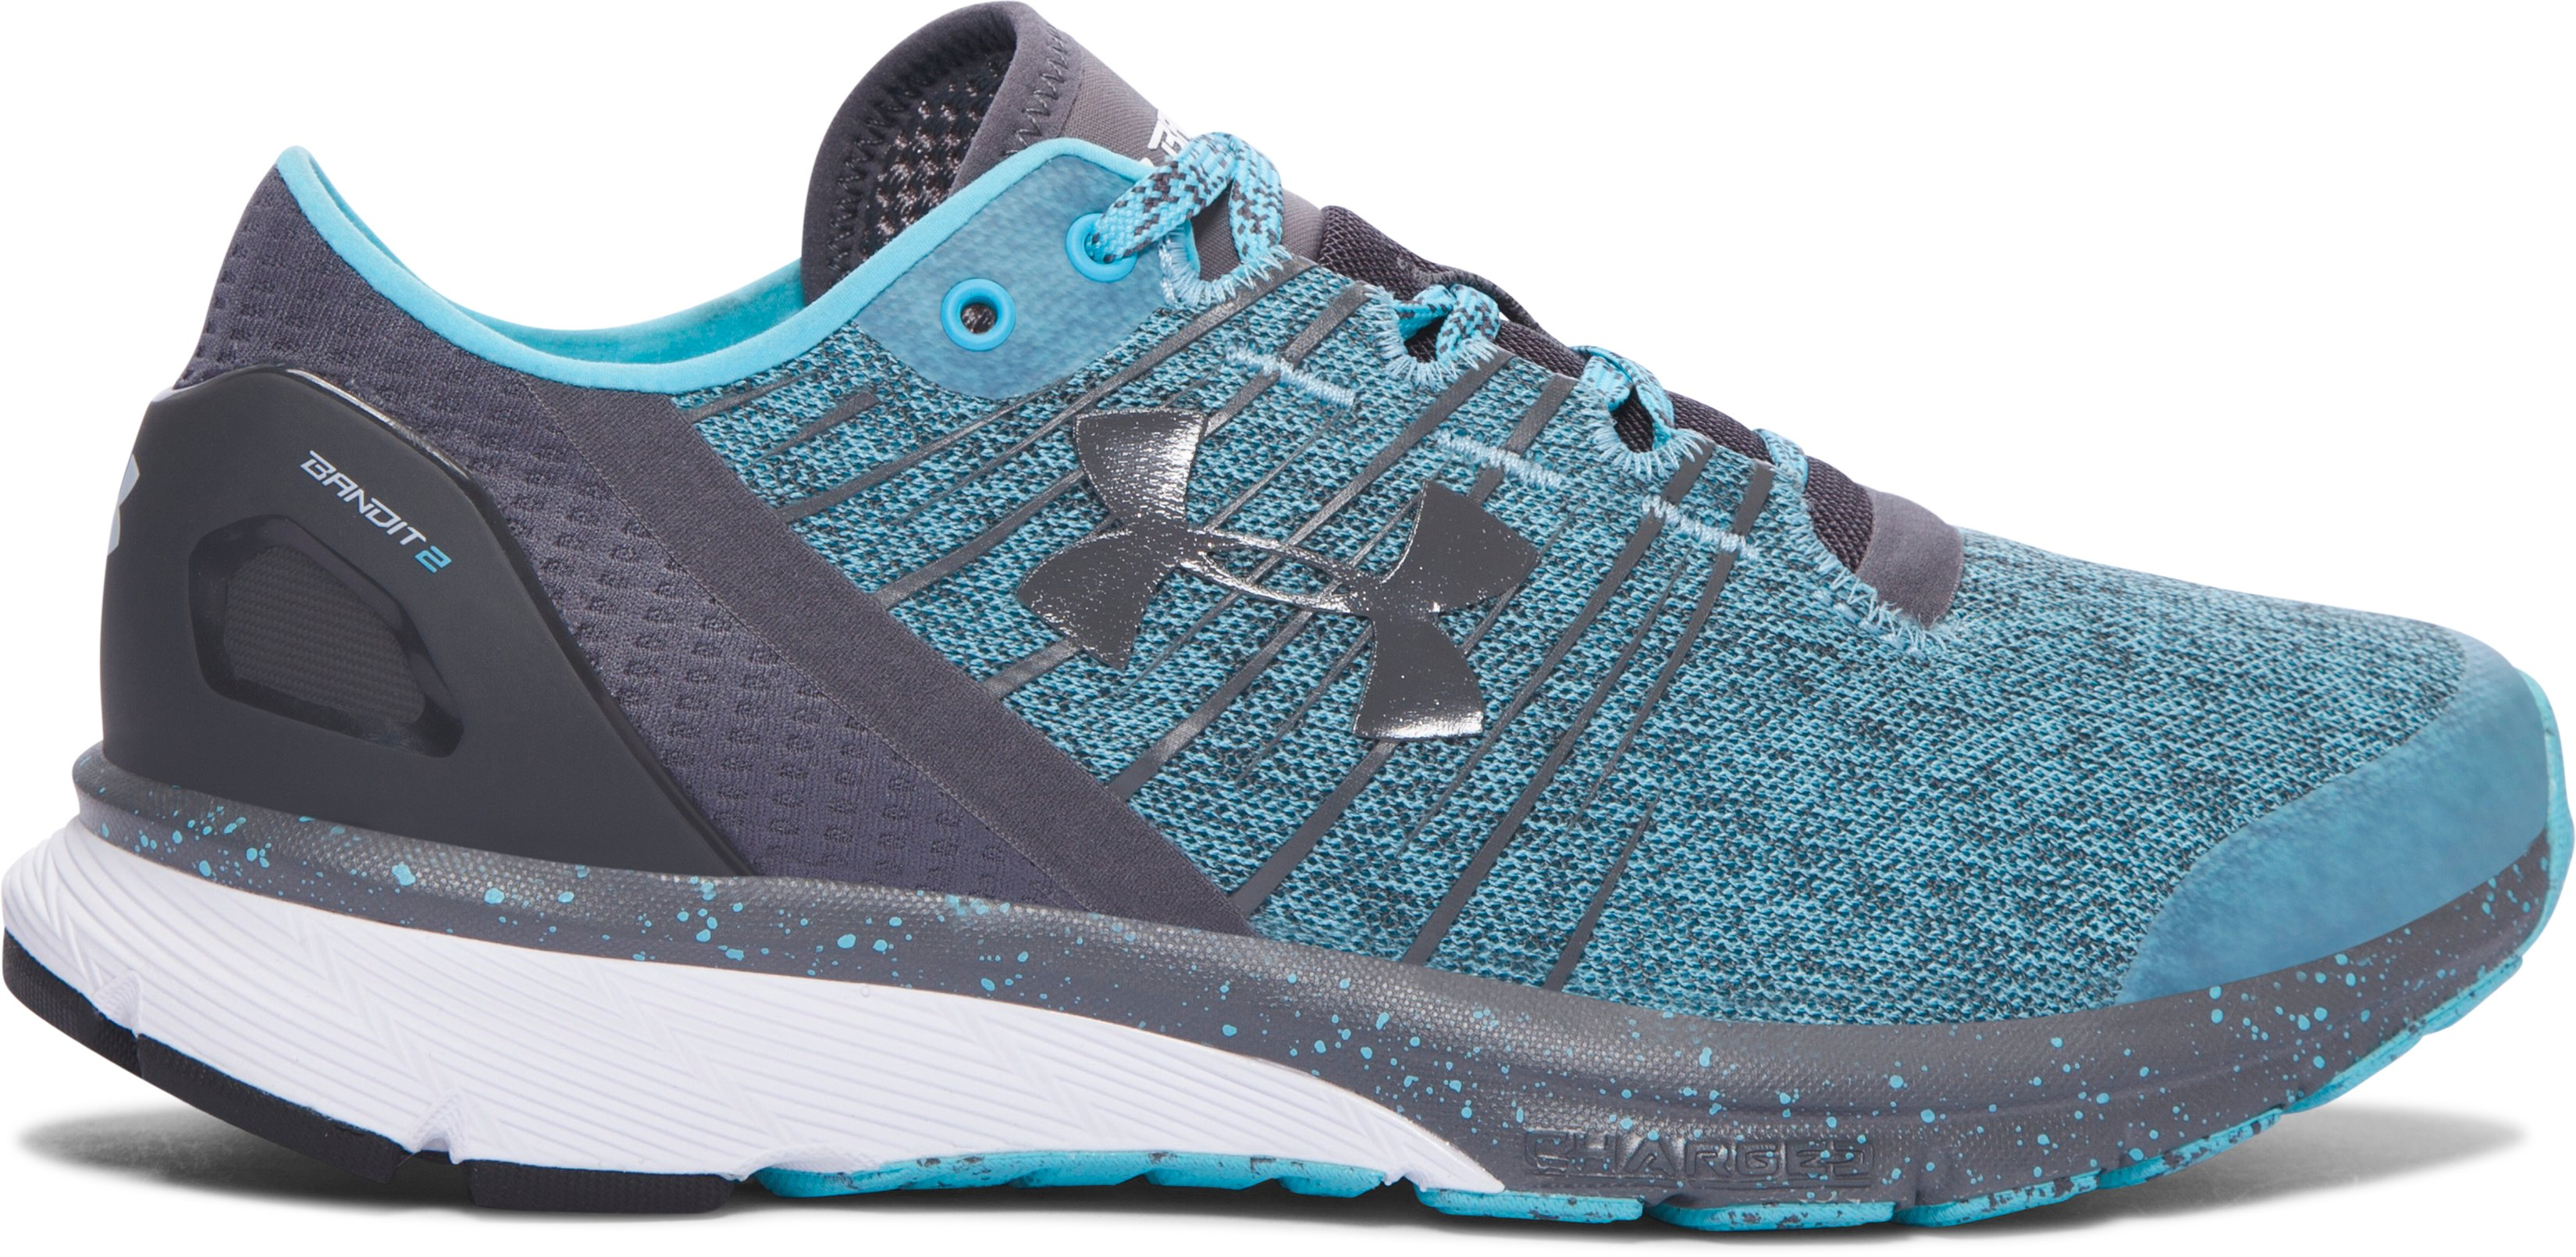 Zapatos de Running UA Charged Bandit 2 para Mujer, 360 degree view